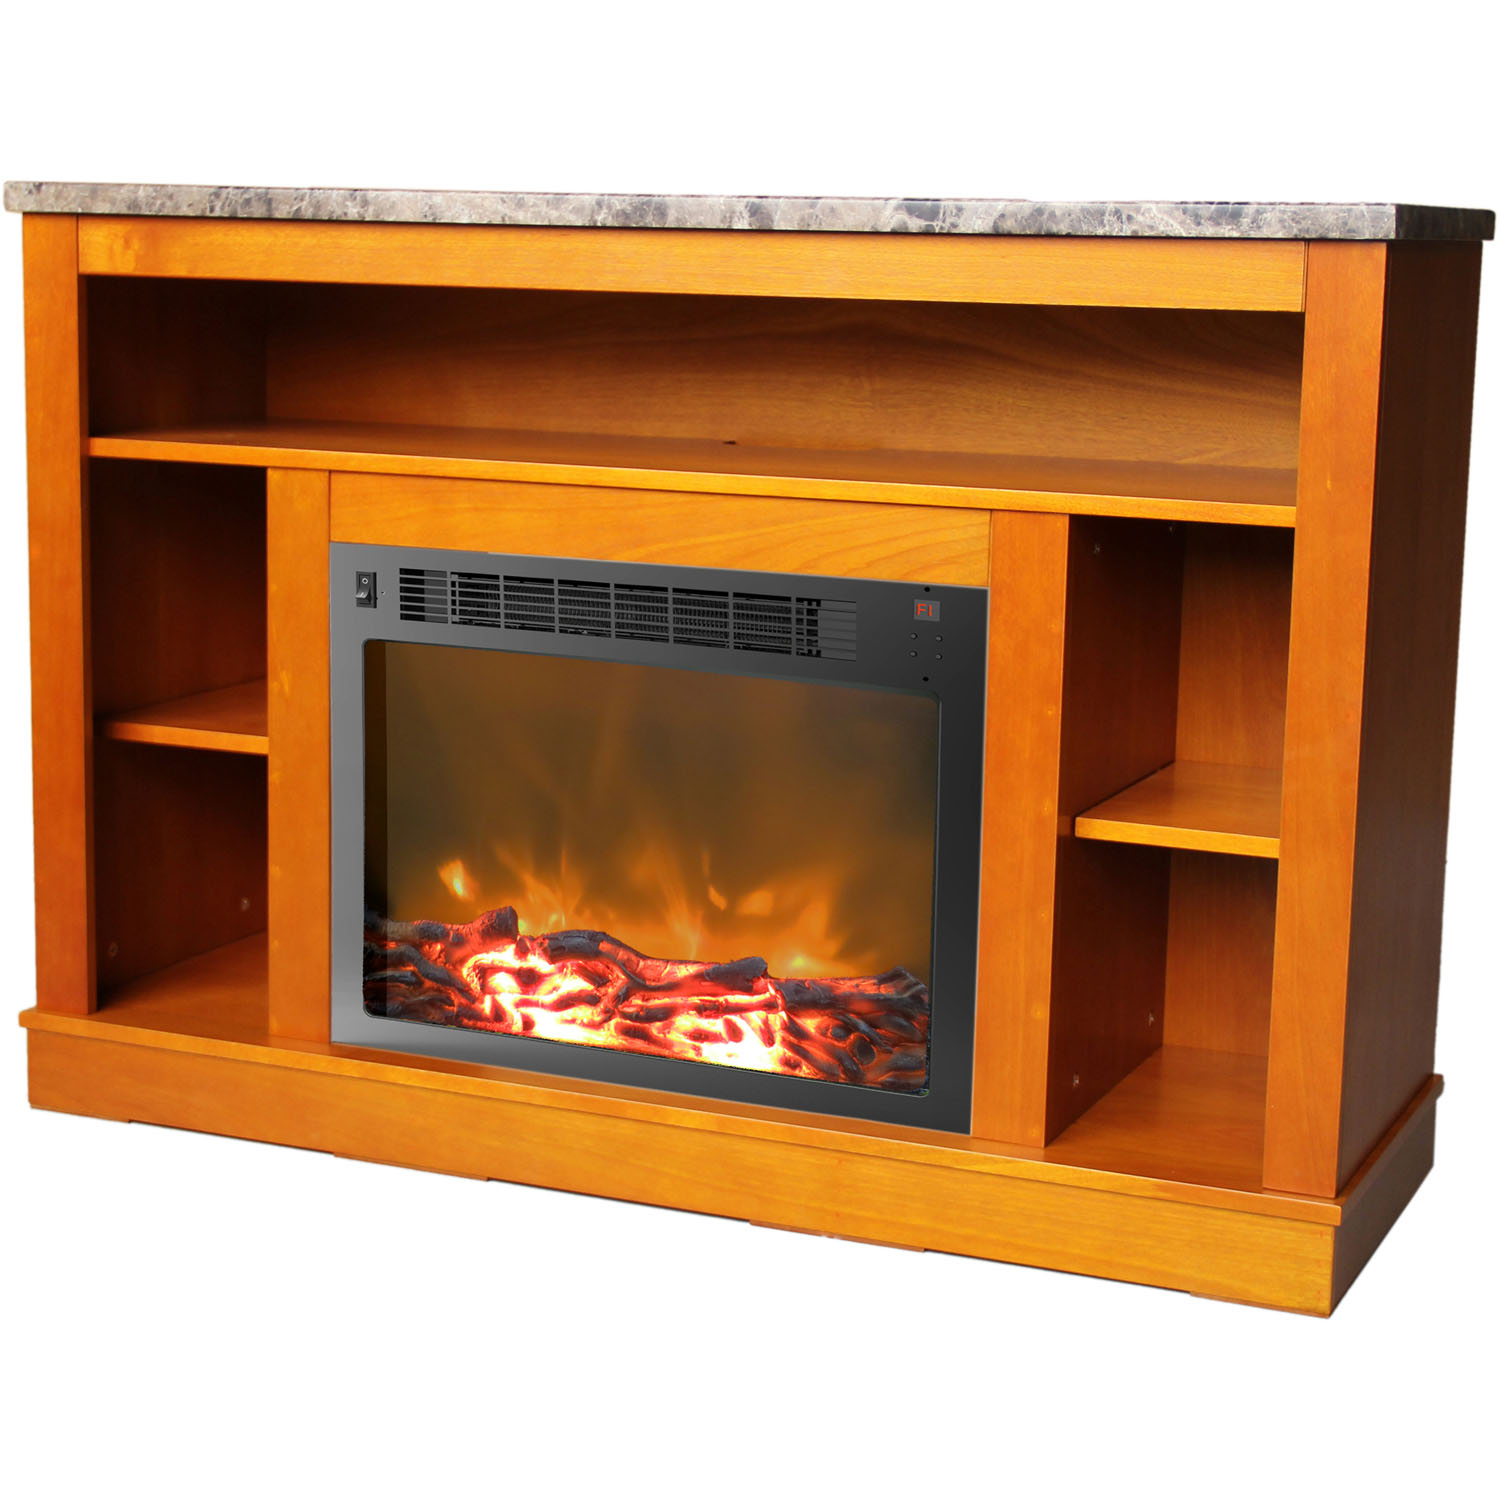 Seville Fireplace Mantel with Electronic Fireplace Insert